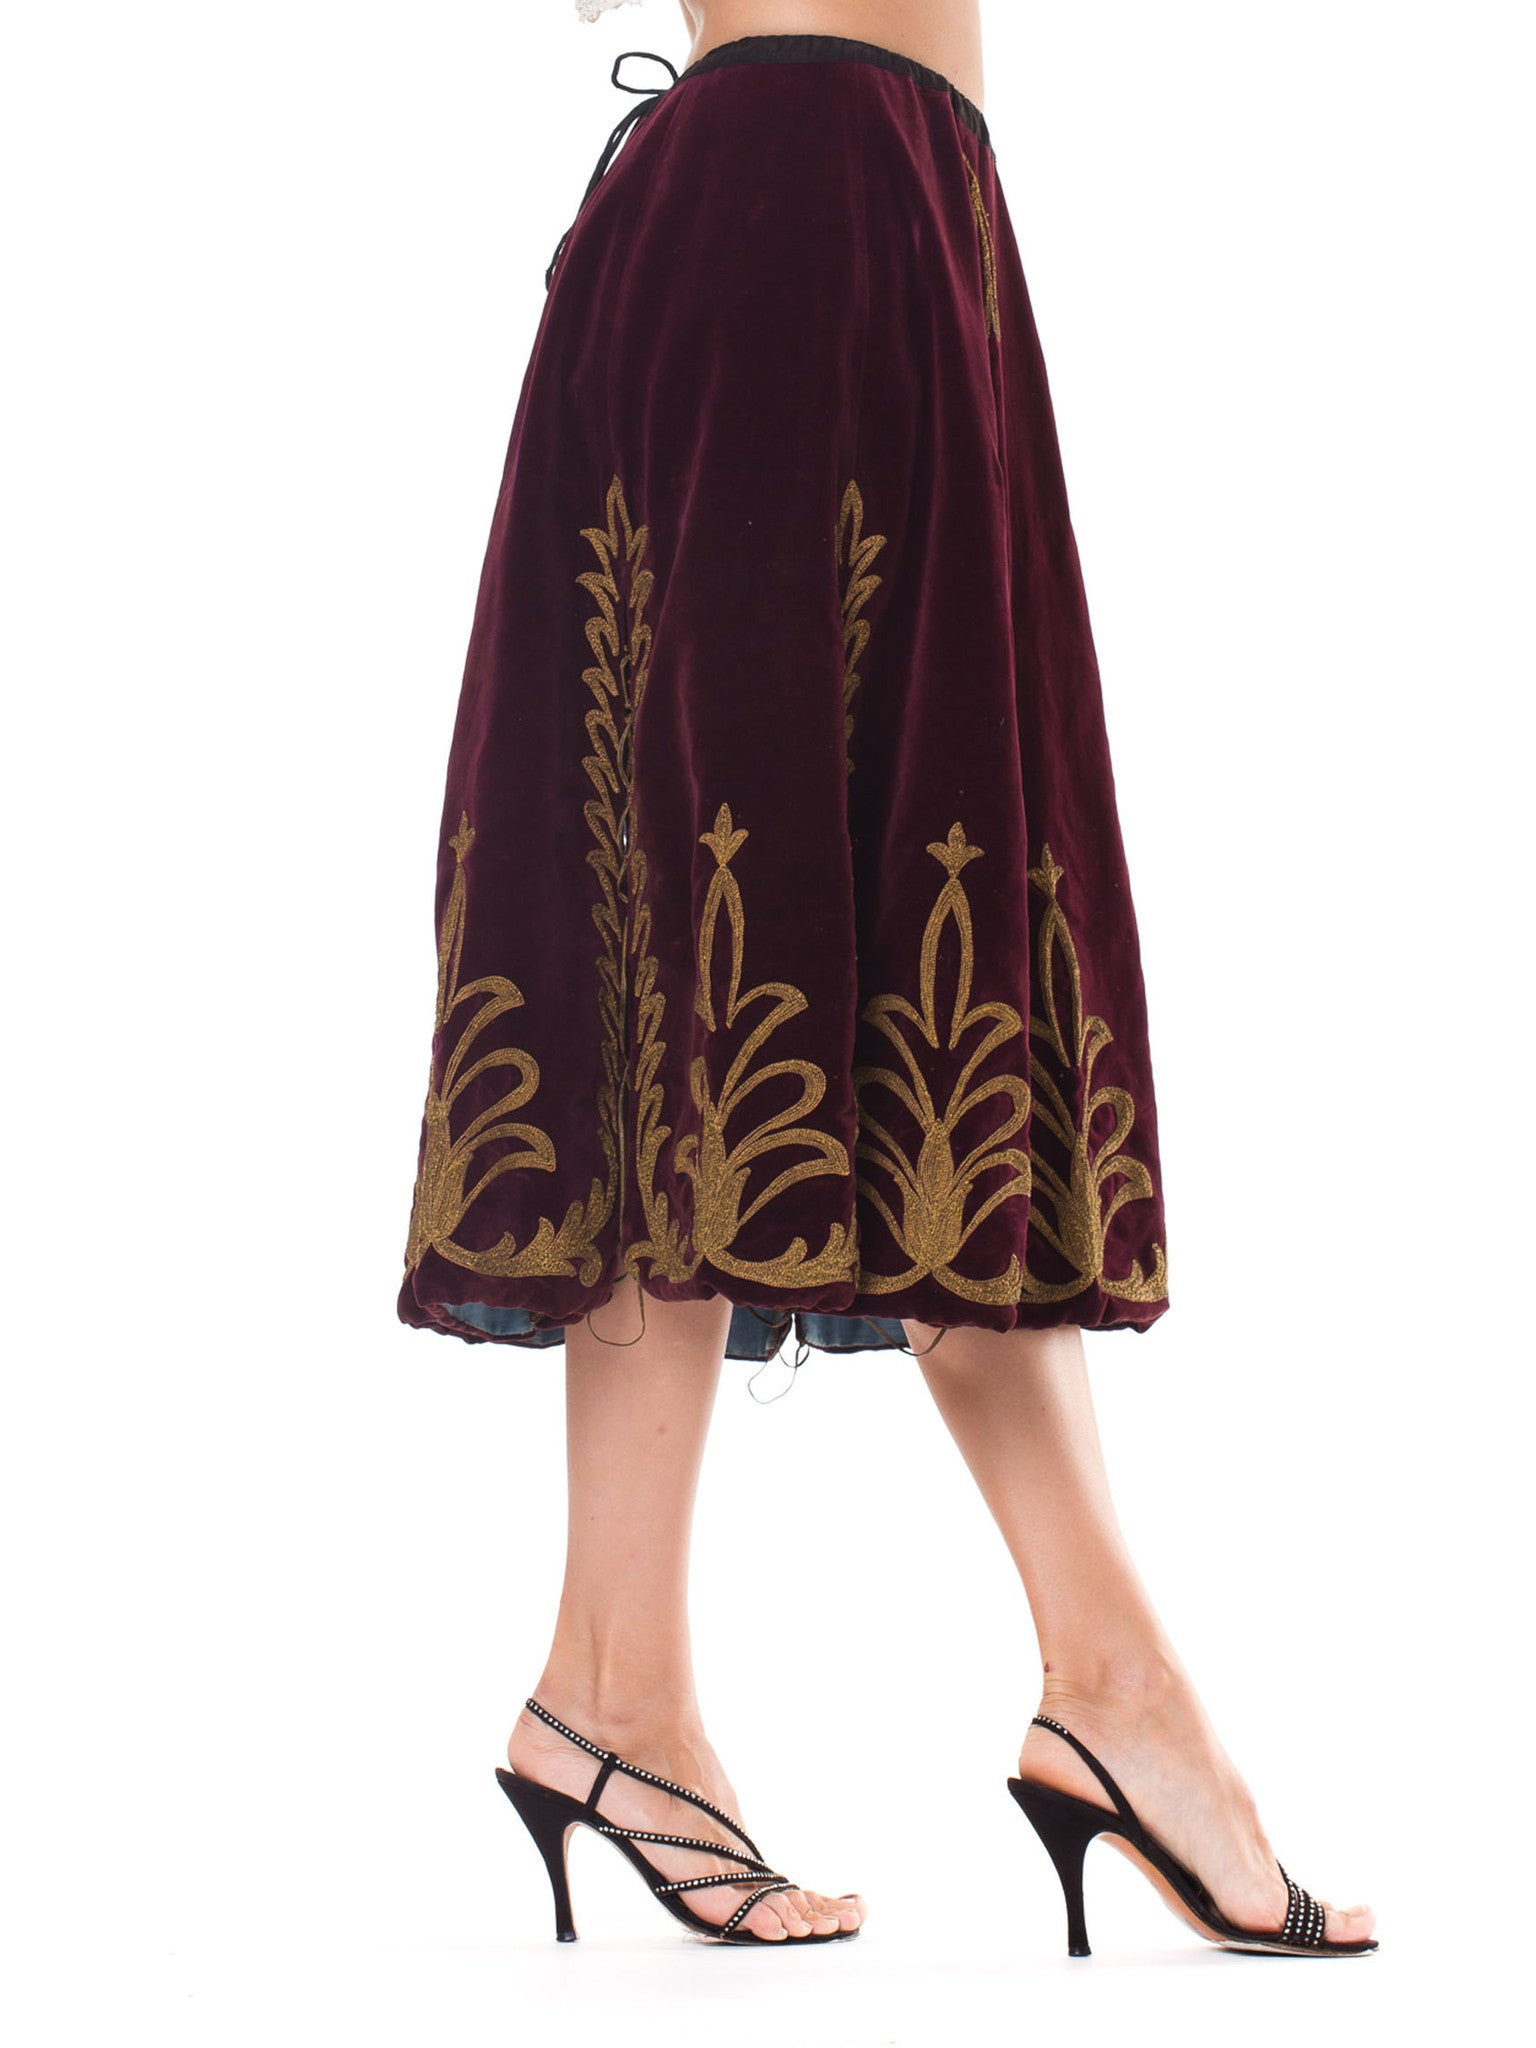 Victorian Cranberry Red Cotton Velvet Skirt With Gold Real Metal Embroidery